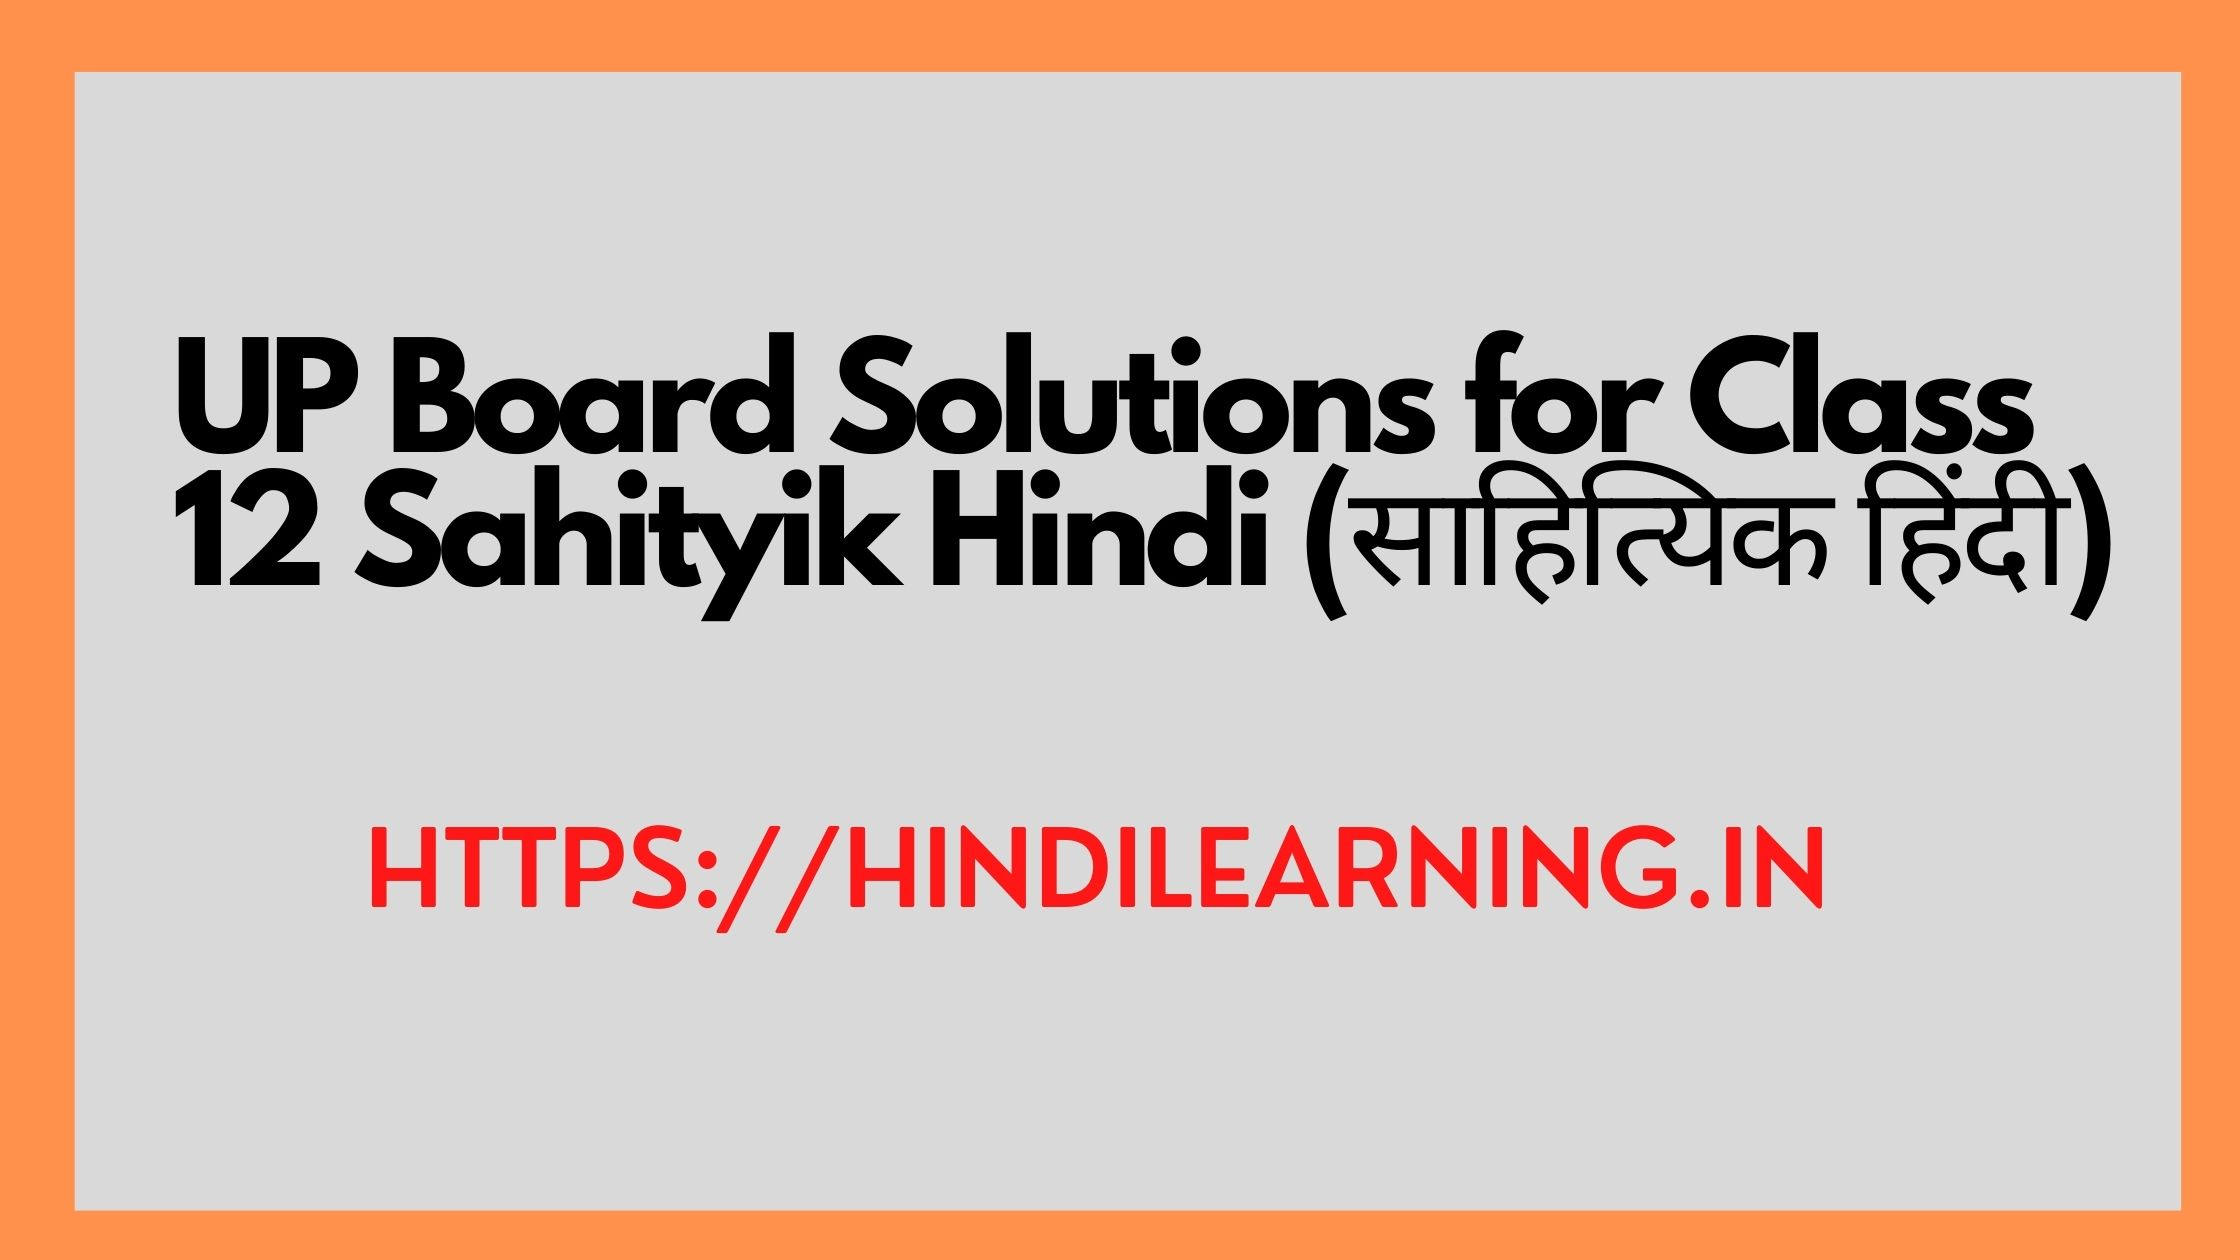 UP Board Solutions for Class 12 Sahityik Hindi (साहित्यिक हिंदी)